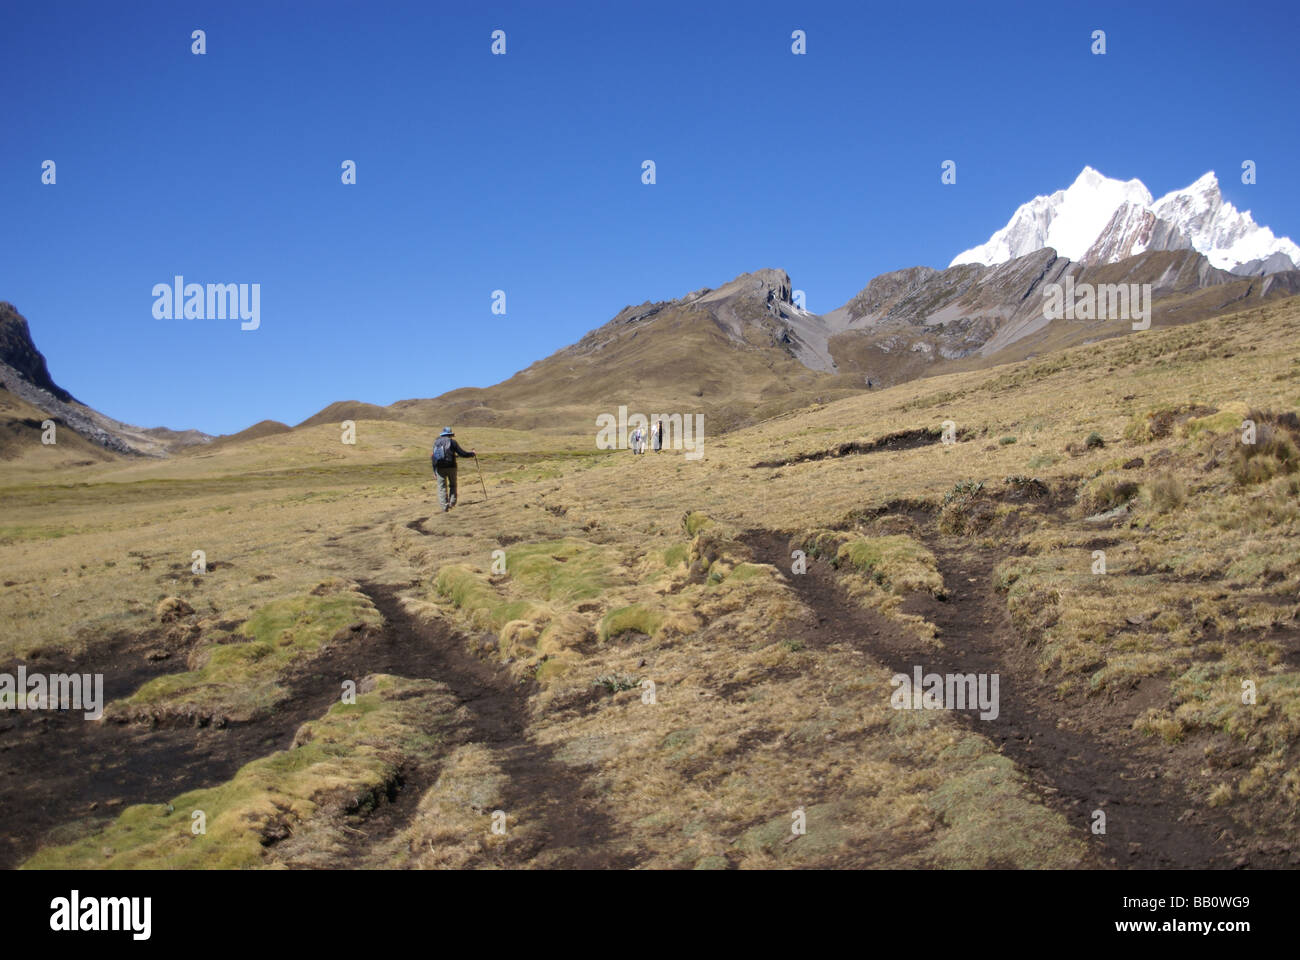 Hikers on trail in high Andes Yerupaja in background Cordillera Huayhuash Andes Peru South America - Stock Image